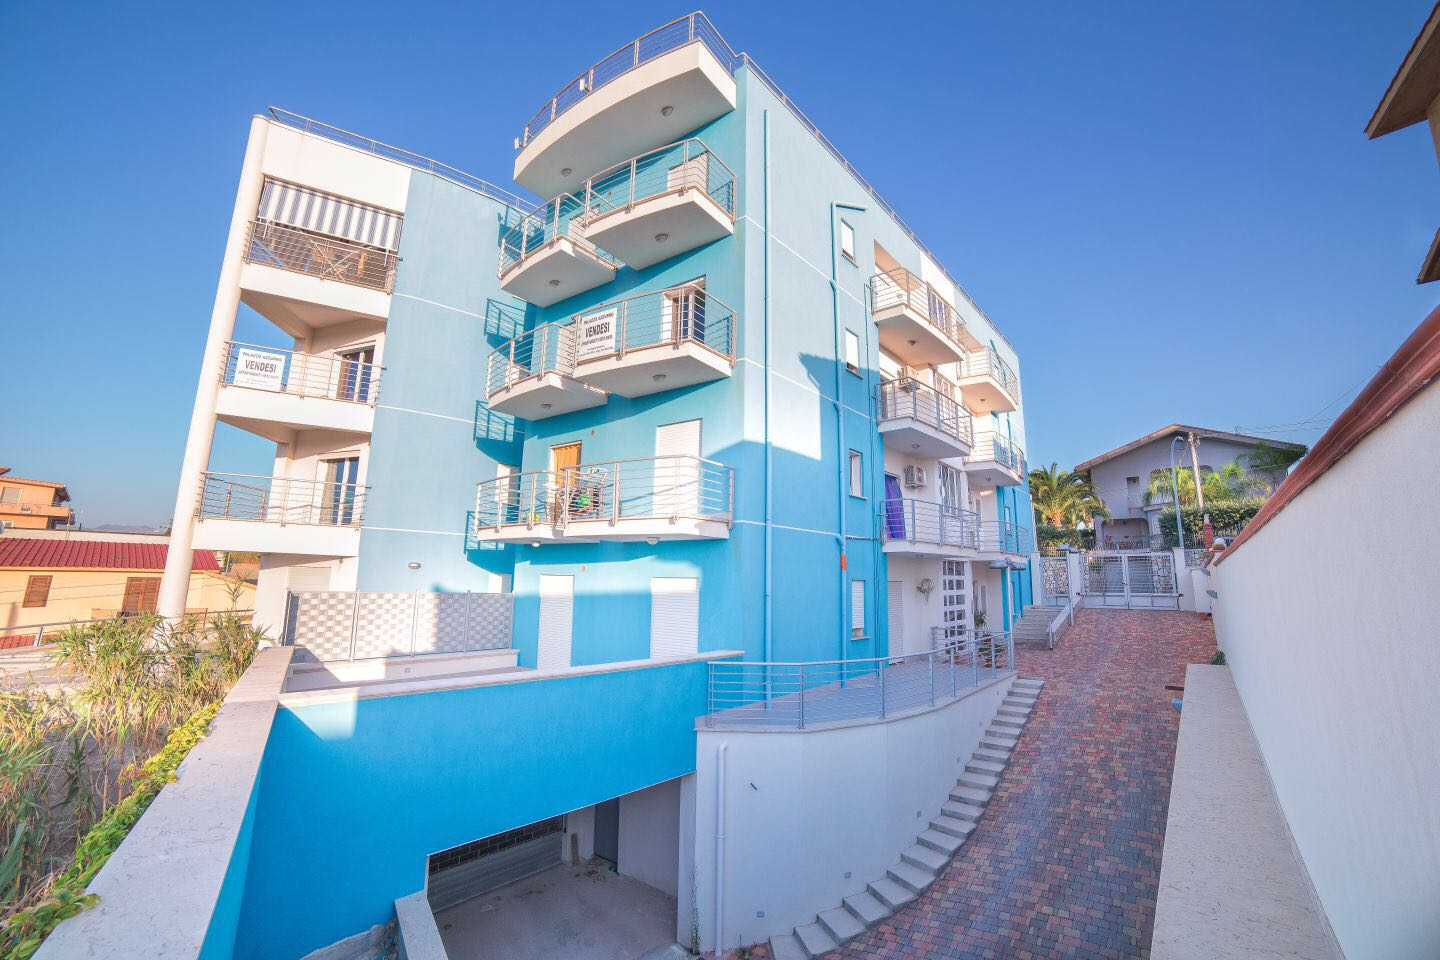 New Seaview Apartments in Balestrate, Palermo, Sicily